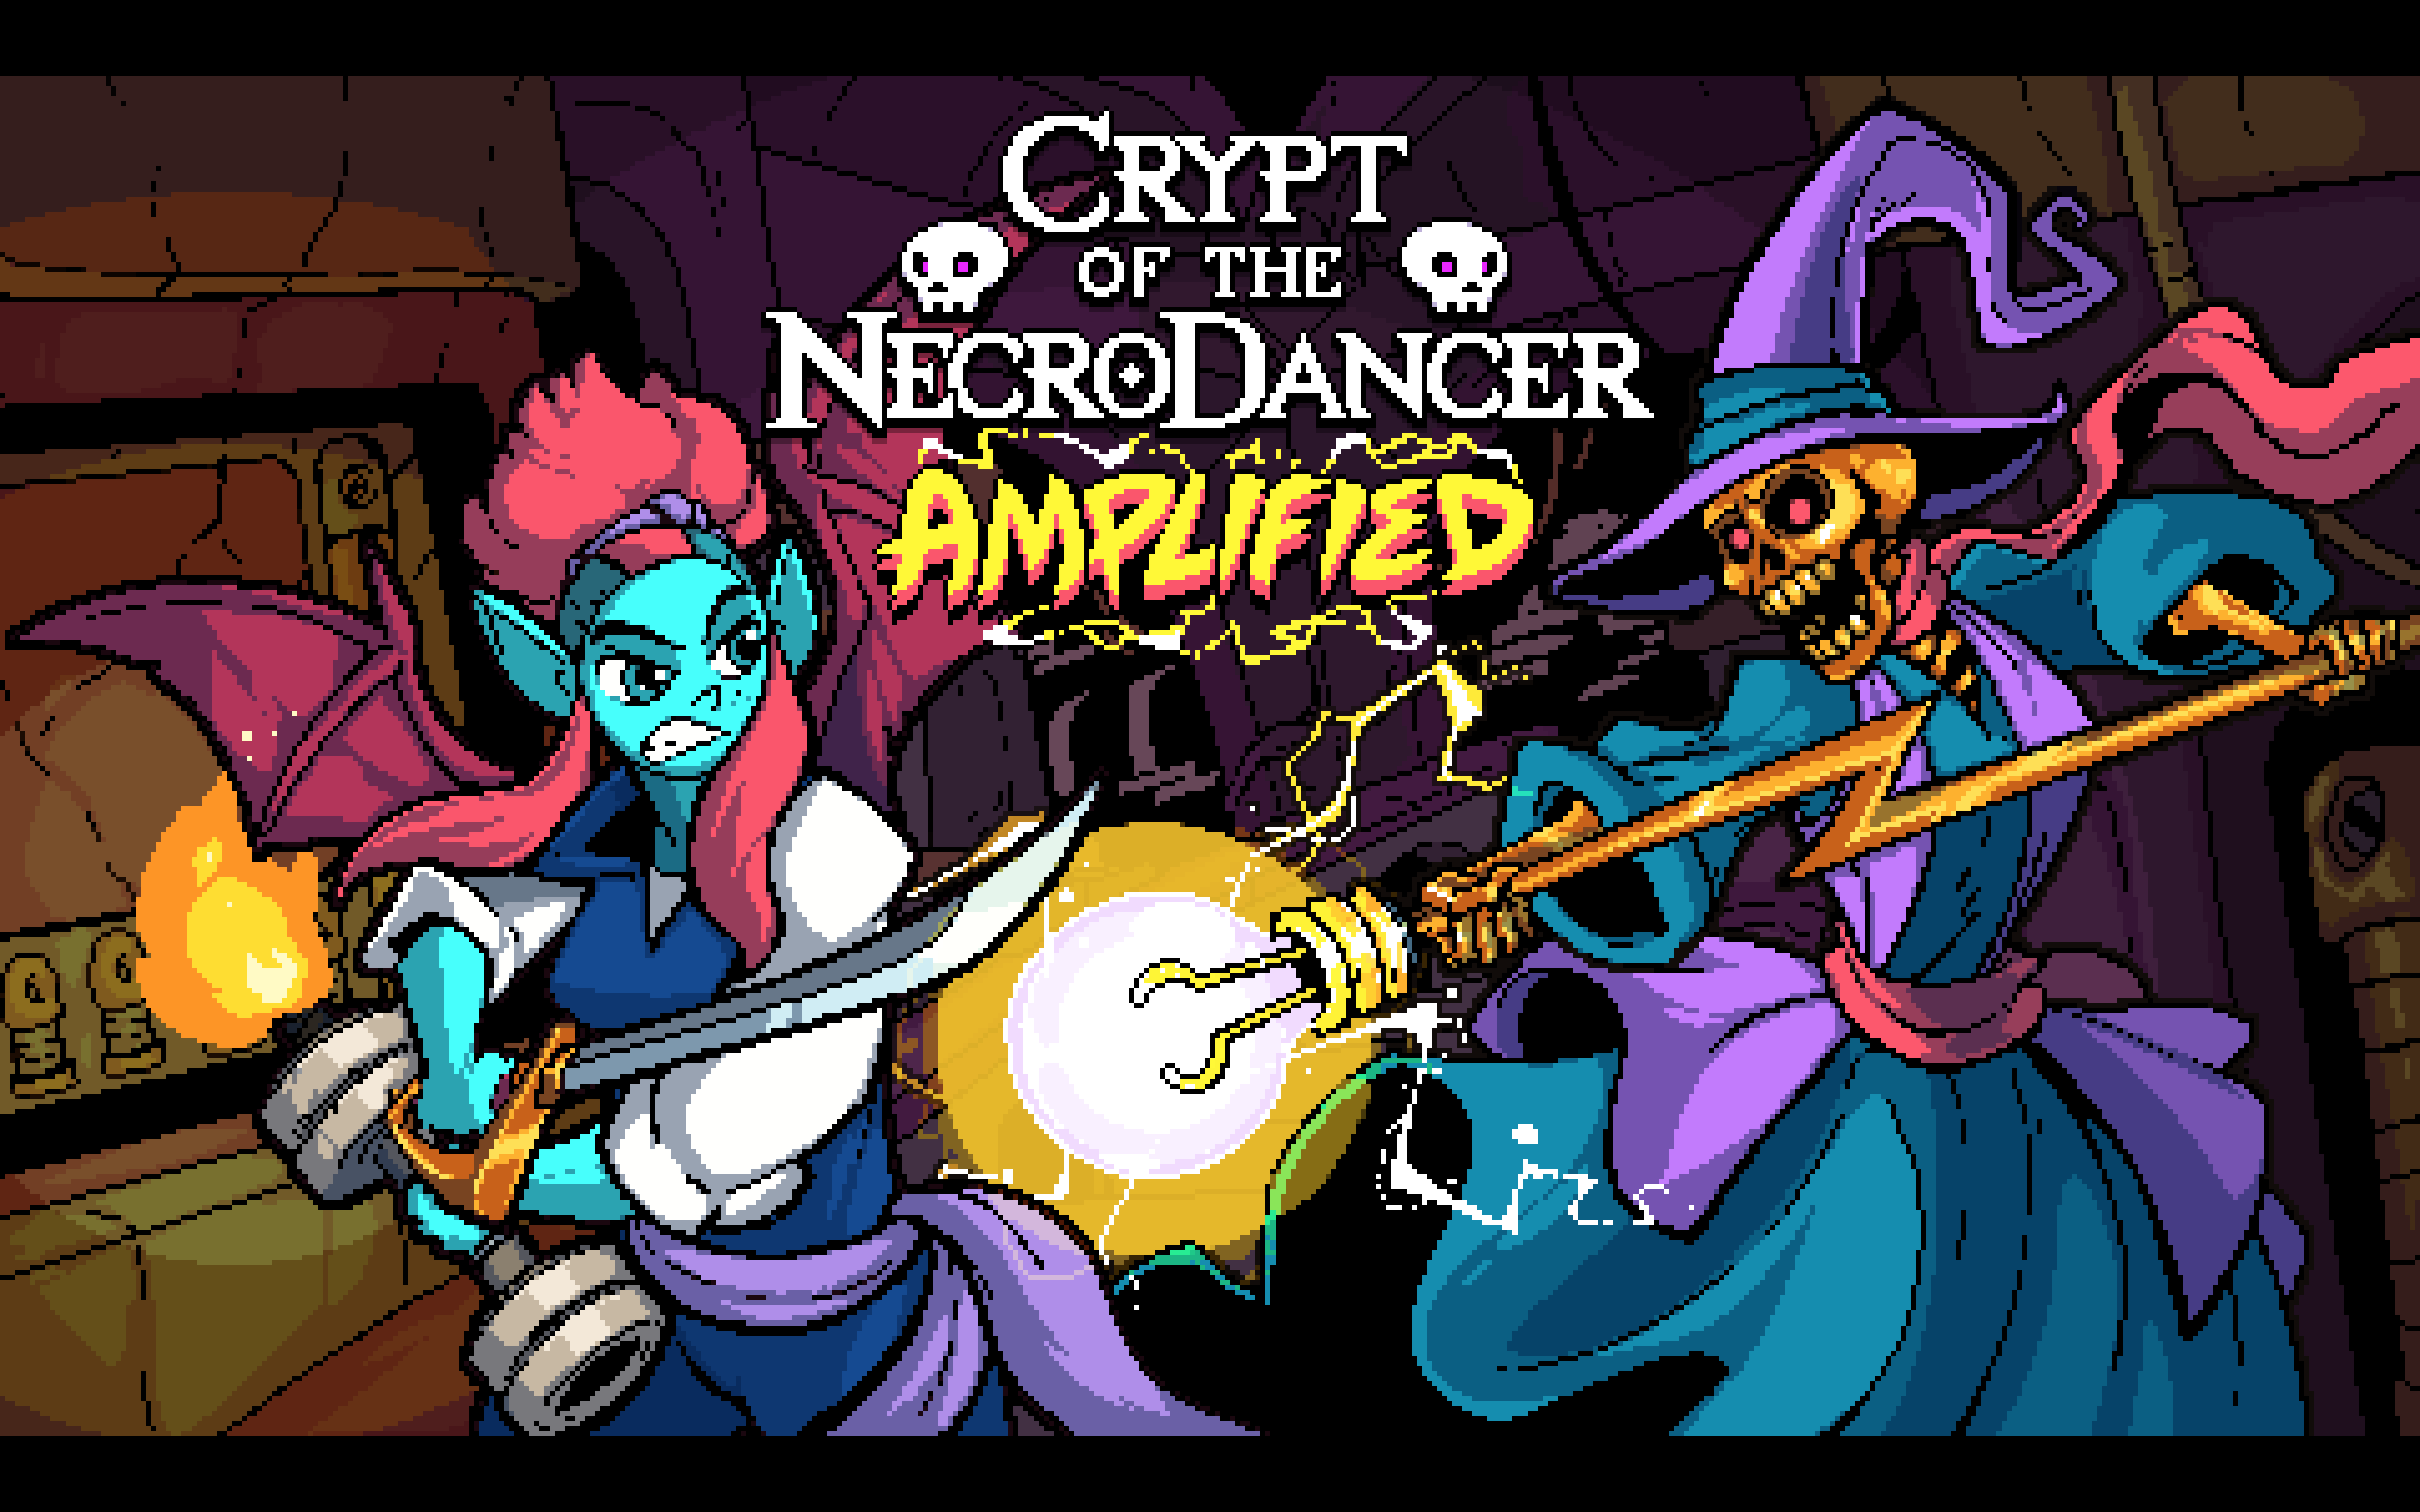 Crypt Of The Necrodancer Crypt Of The Necrodancer Hd Wallpaper